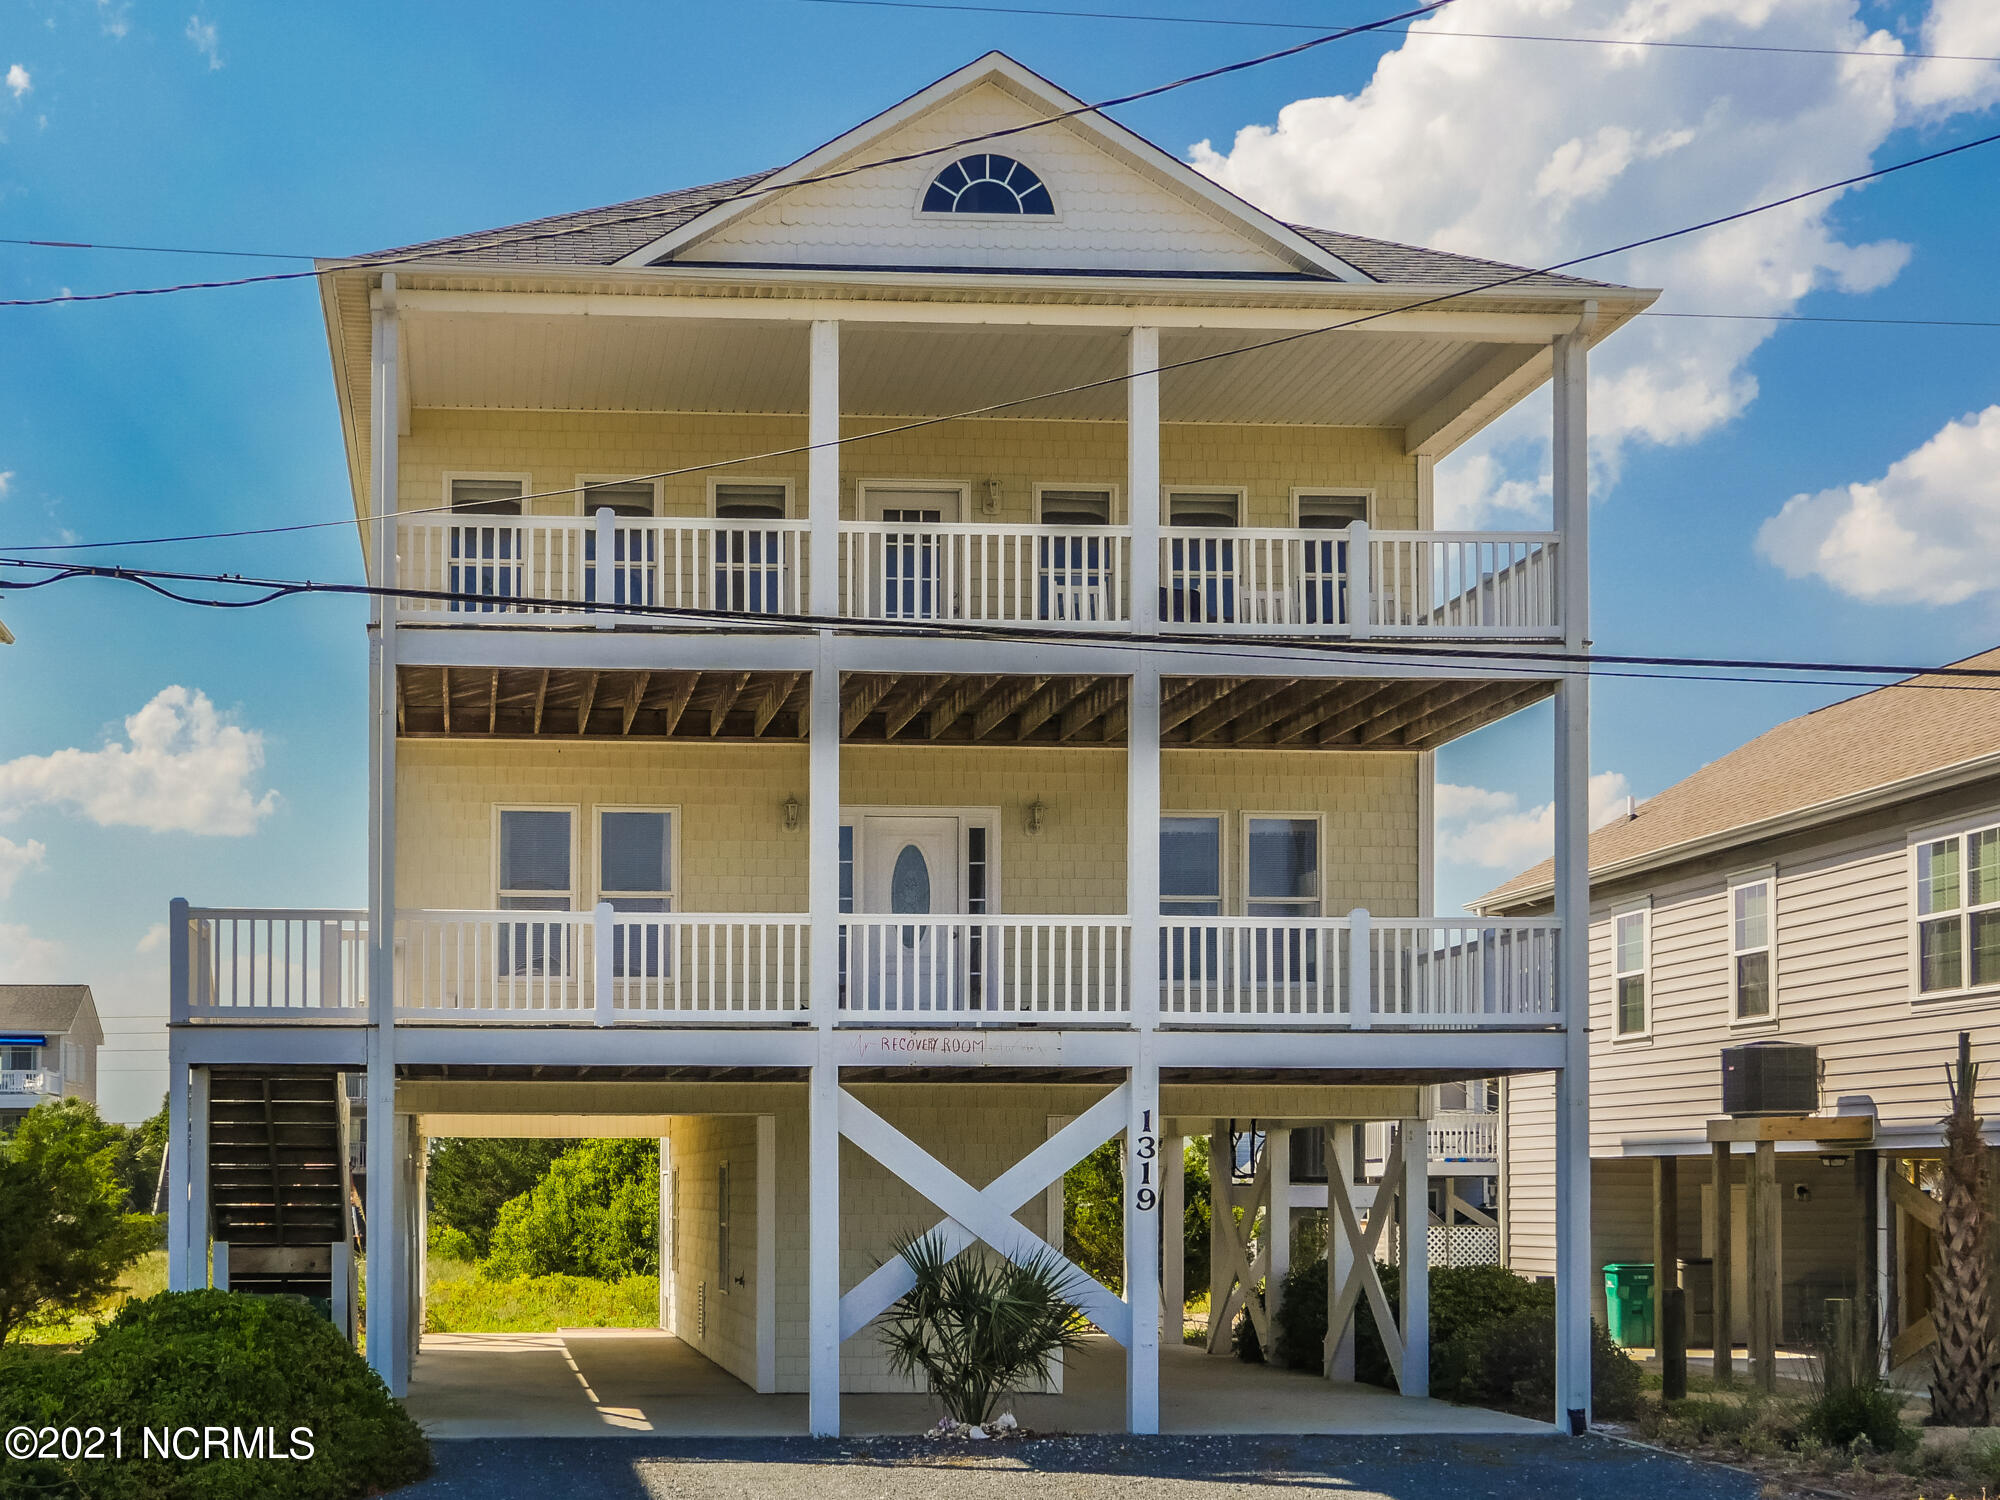 1319 Topsail Drive, Surf City, North Carolina 28445, 5 Bedrooms Bedrooms, 8 Rooms Rooms,3 BathroomsBathrooms,Single family residence,For sale,Topsail,100276542